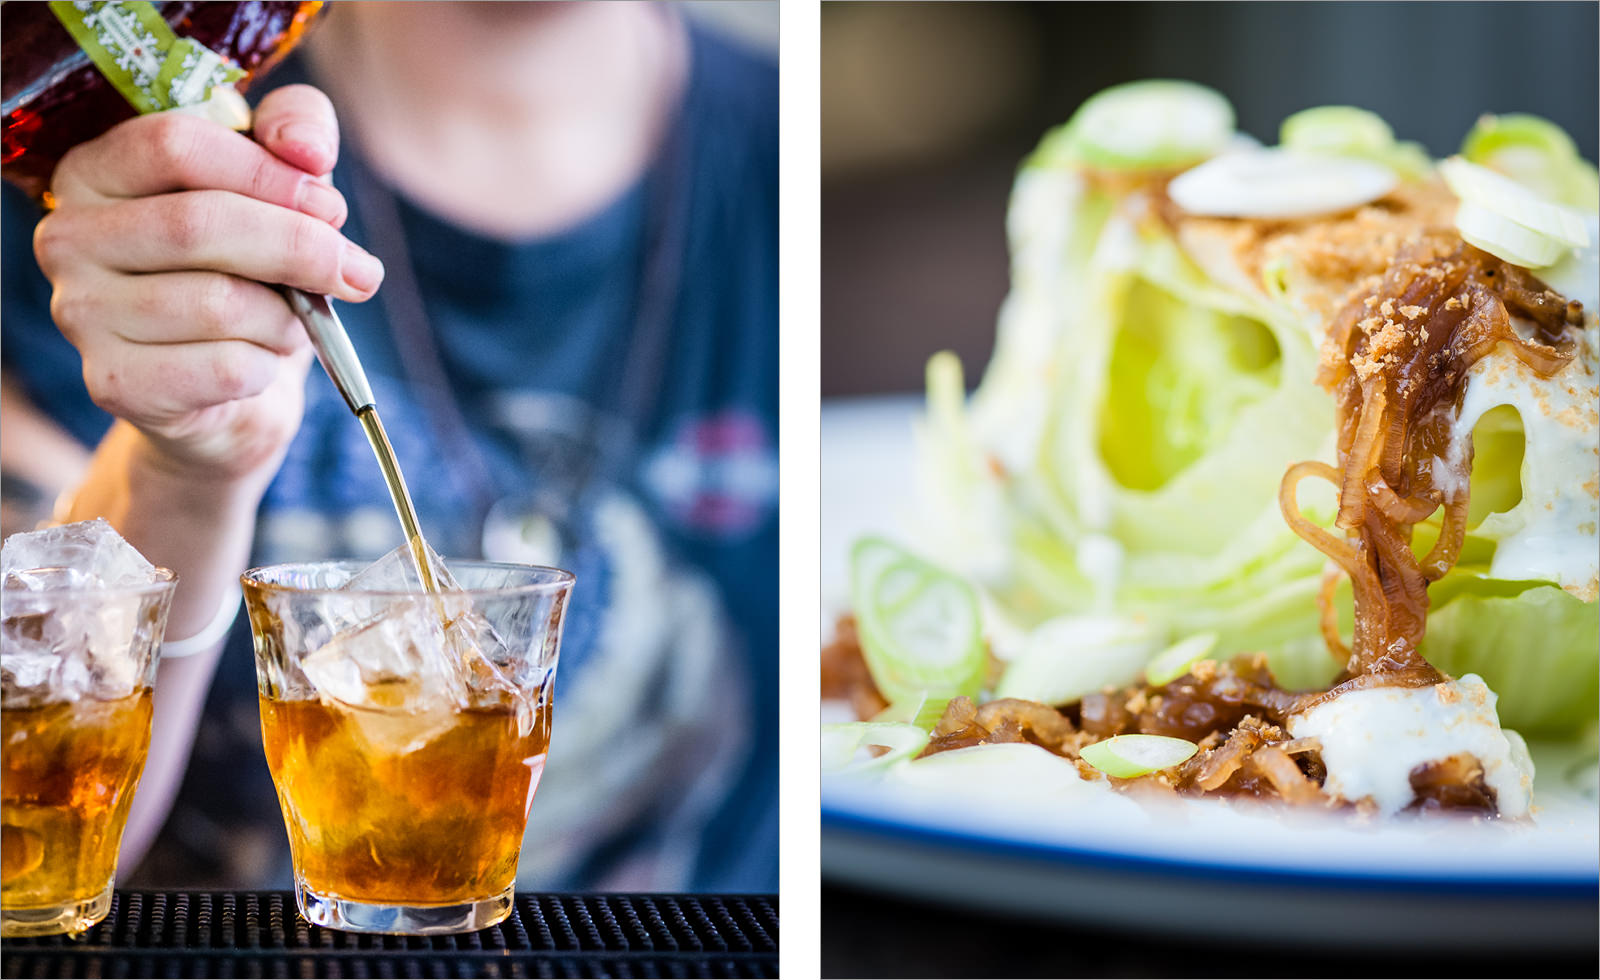 Food and Drink | Published Work photographer pwf